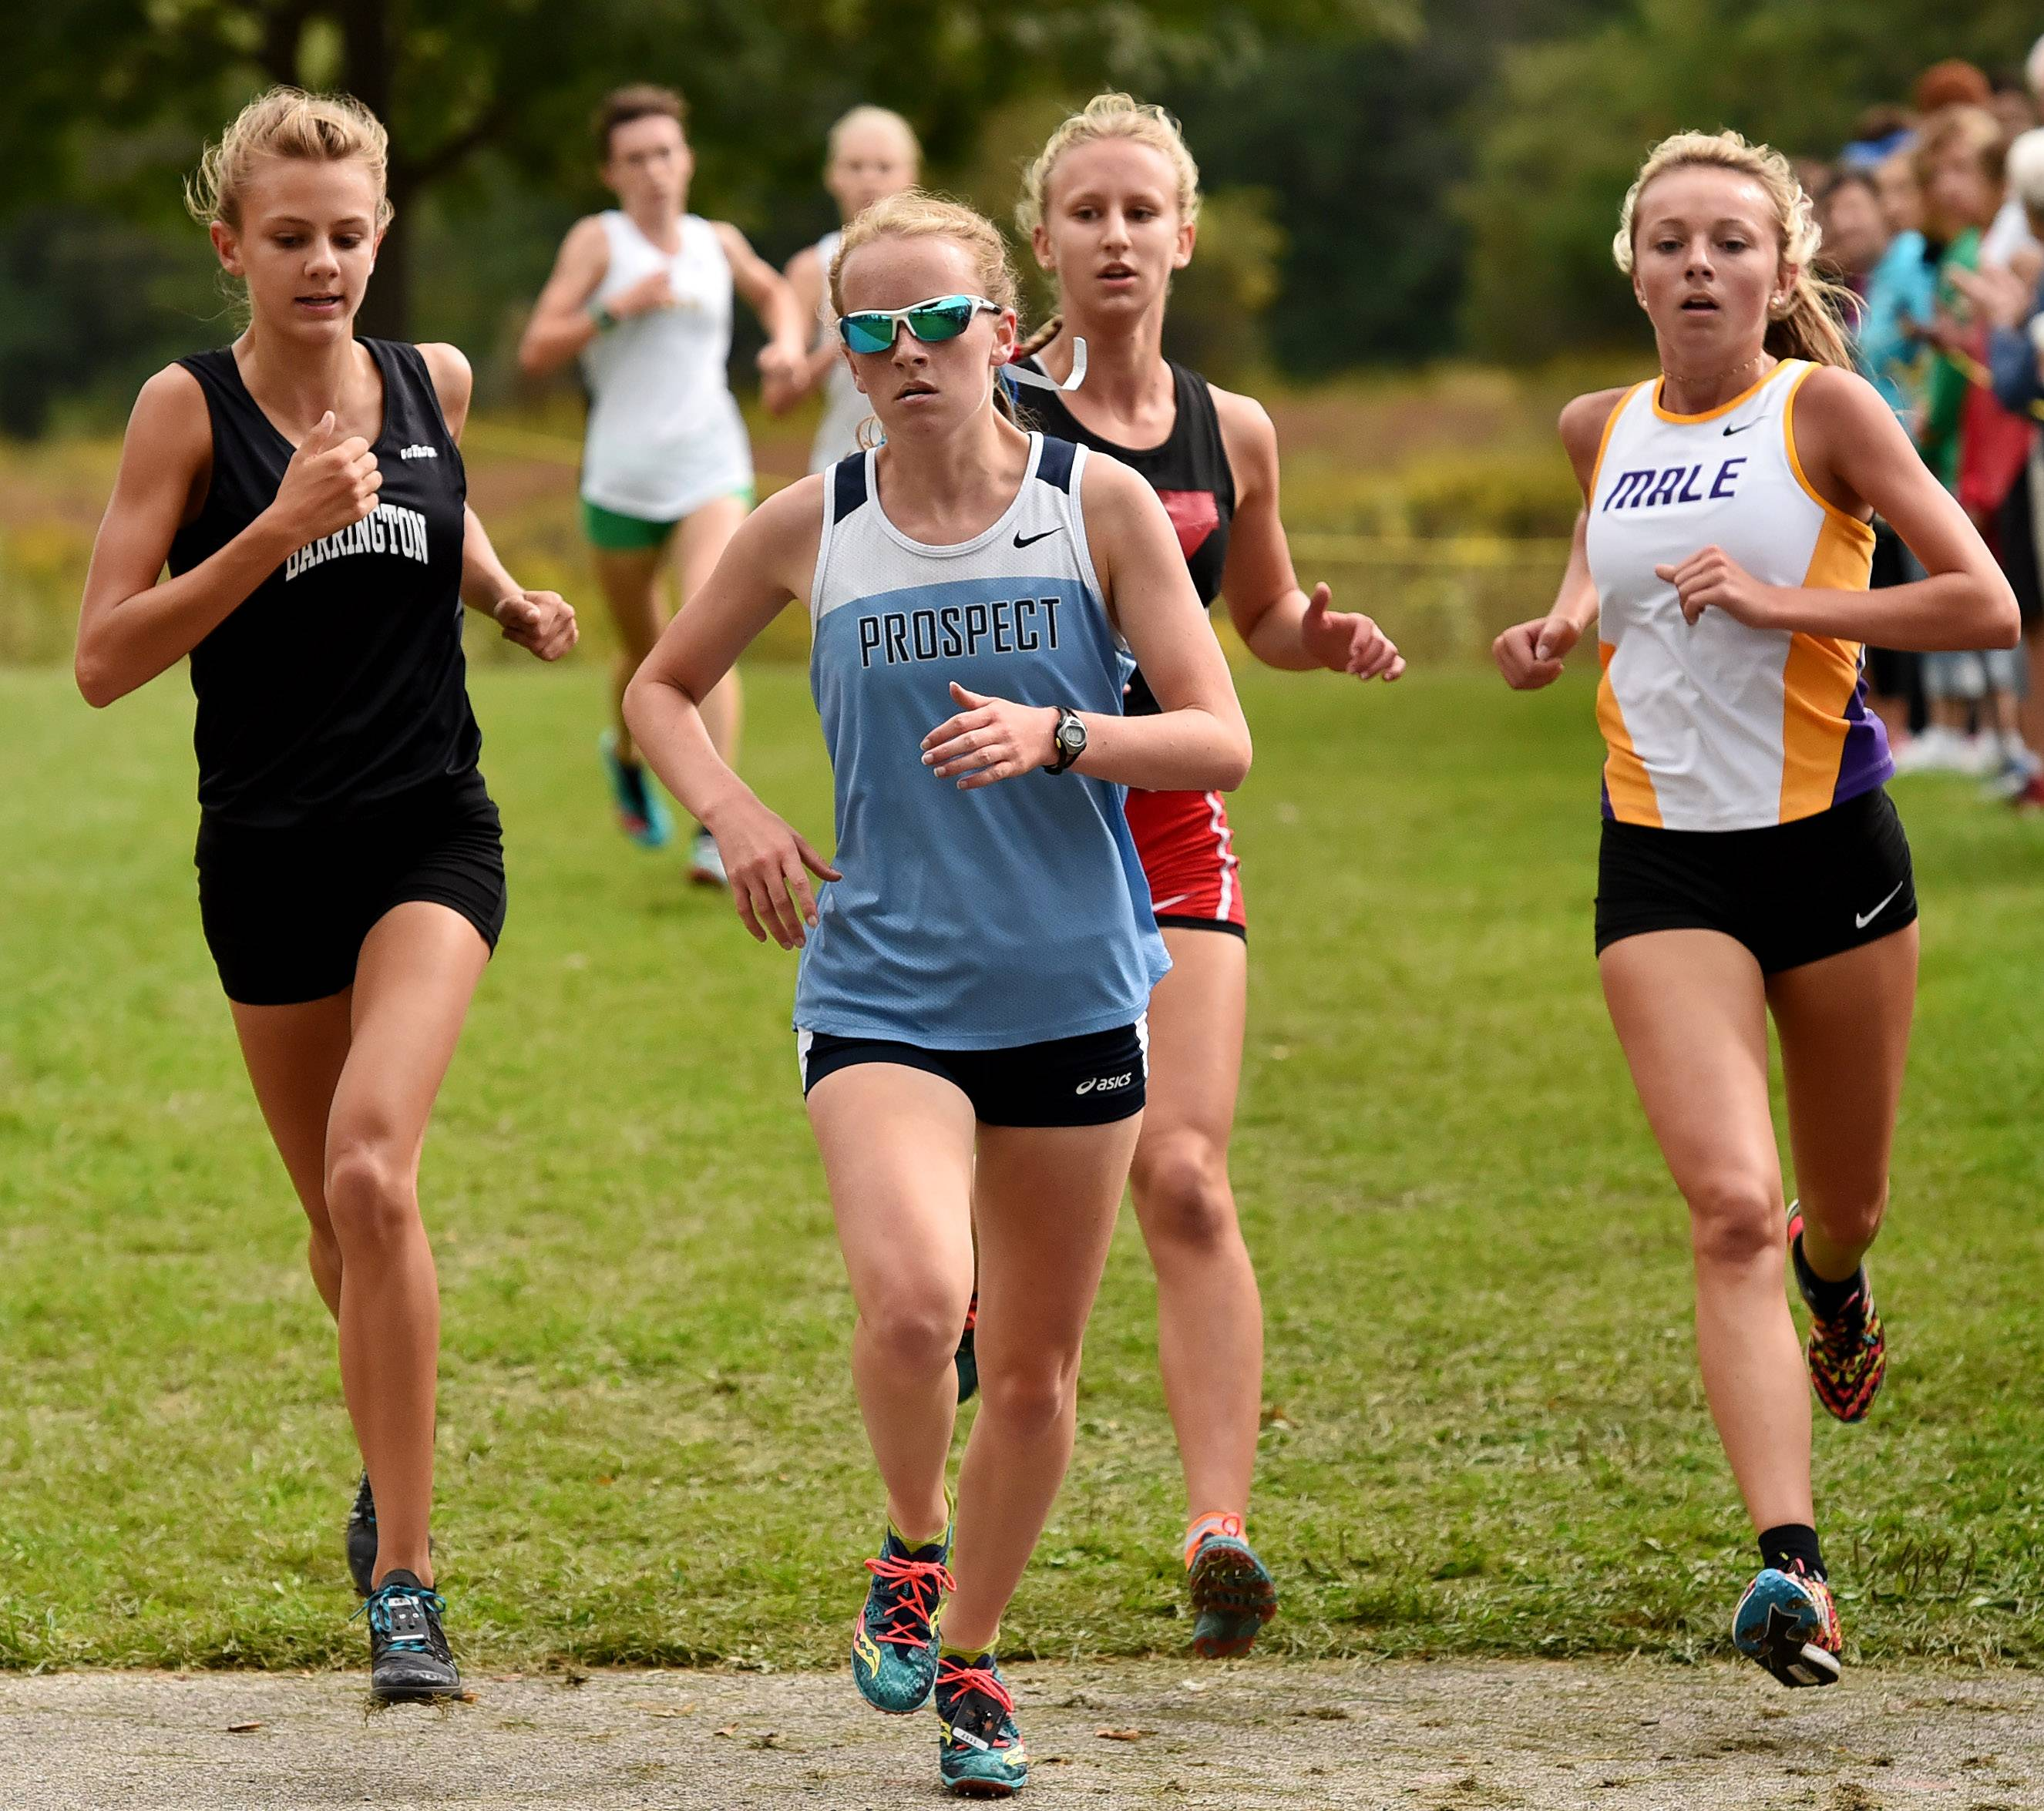 Brooke Wilson of Prospect leads the pack at the 2-mile mark in the Palatine Invitational at Deer Grove East Forest Preserve on Saturday.